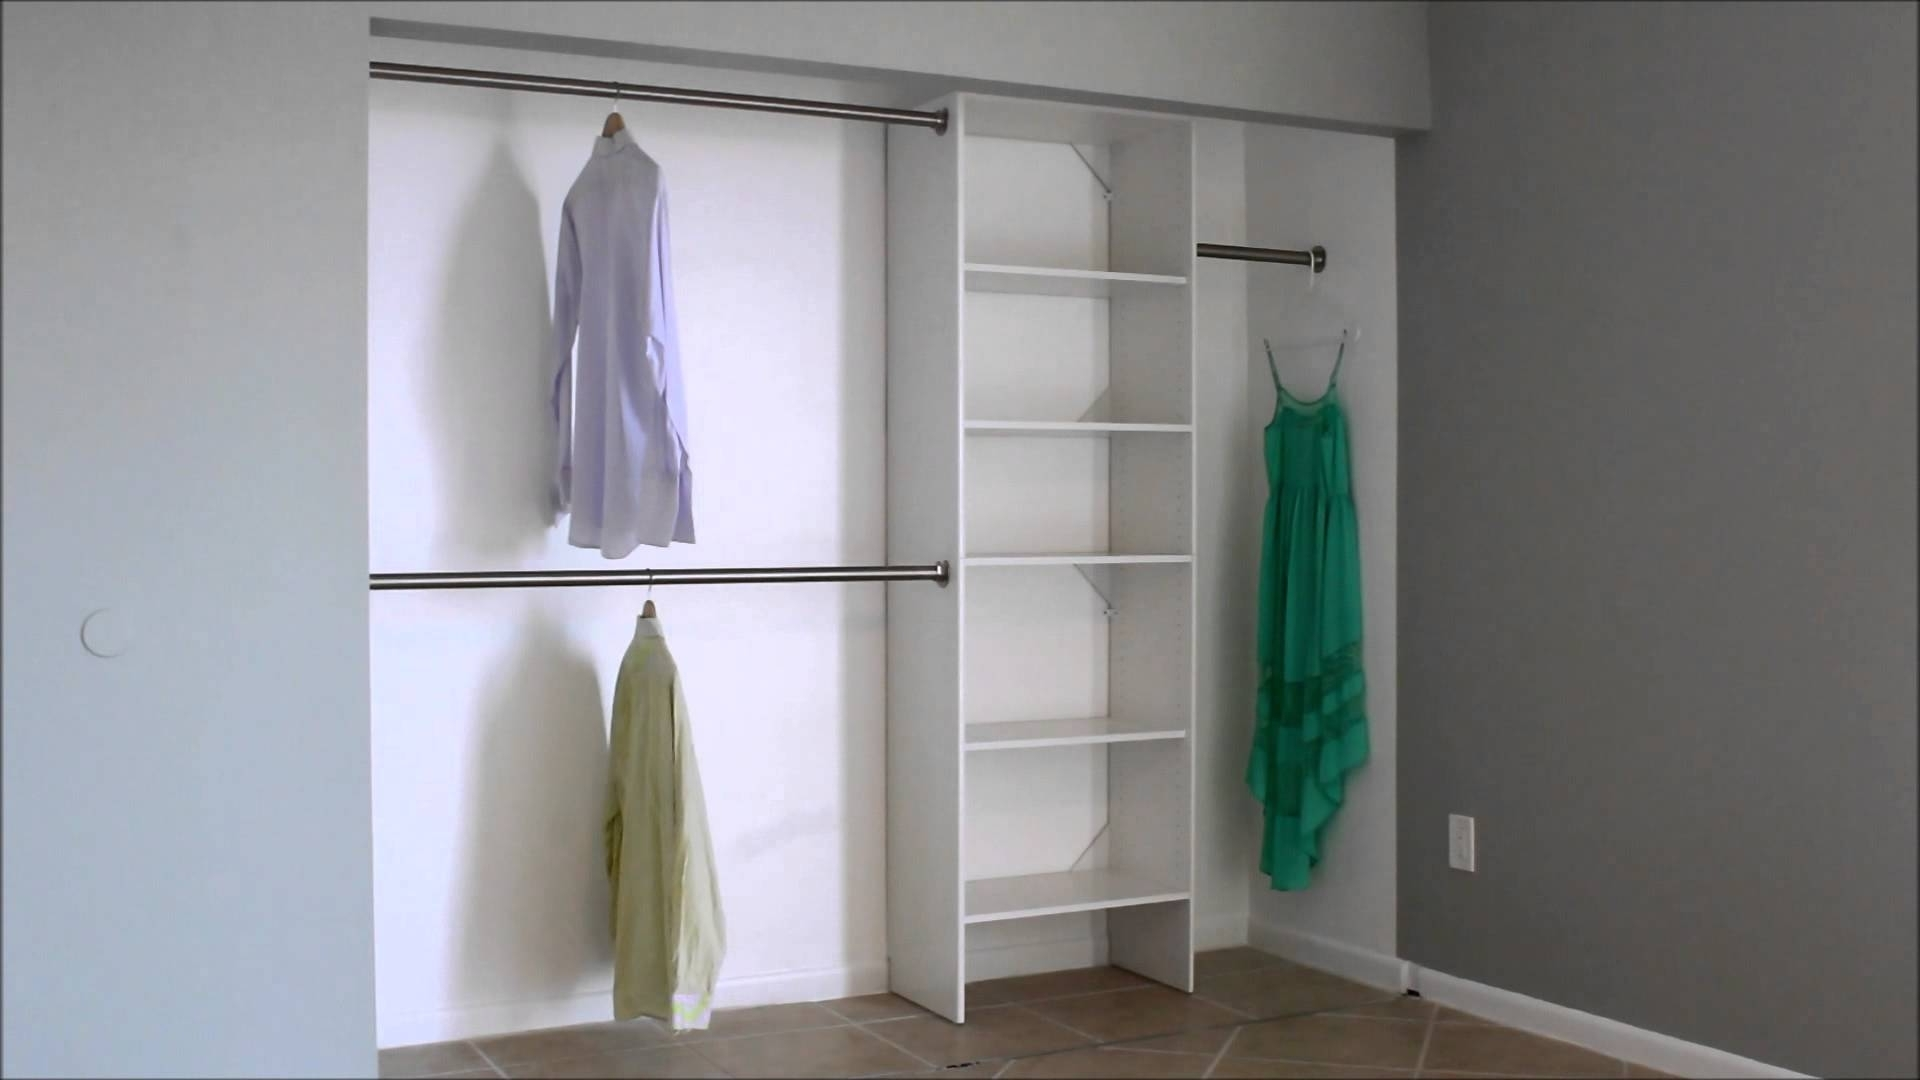 Double Wardrobes Hanging Rail And Supports Intended For 2018 Closet: Surprising Hanging Closet Rod Ideas Hanging Closet Rod (View 3 of 15)